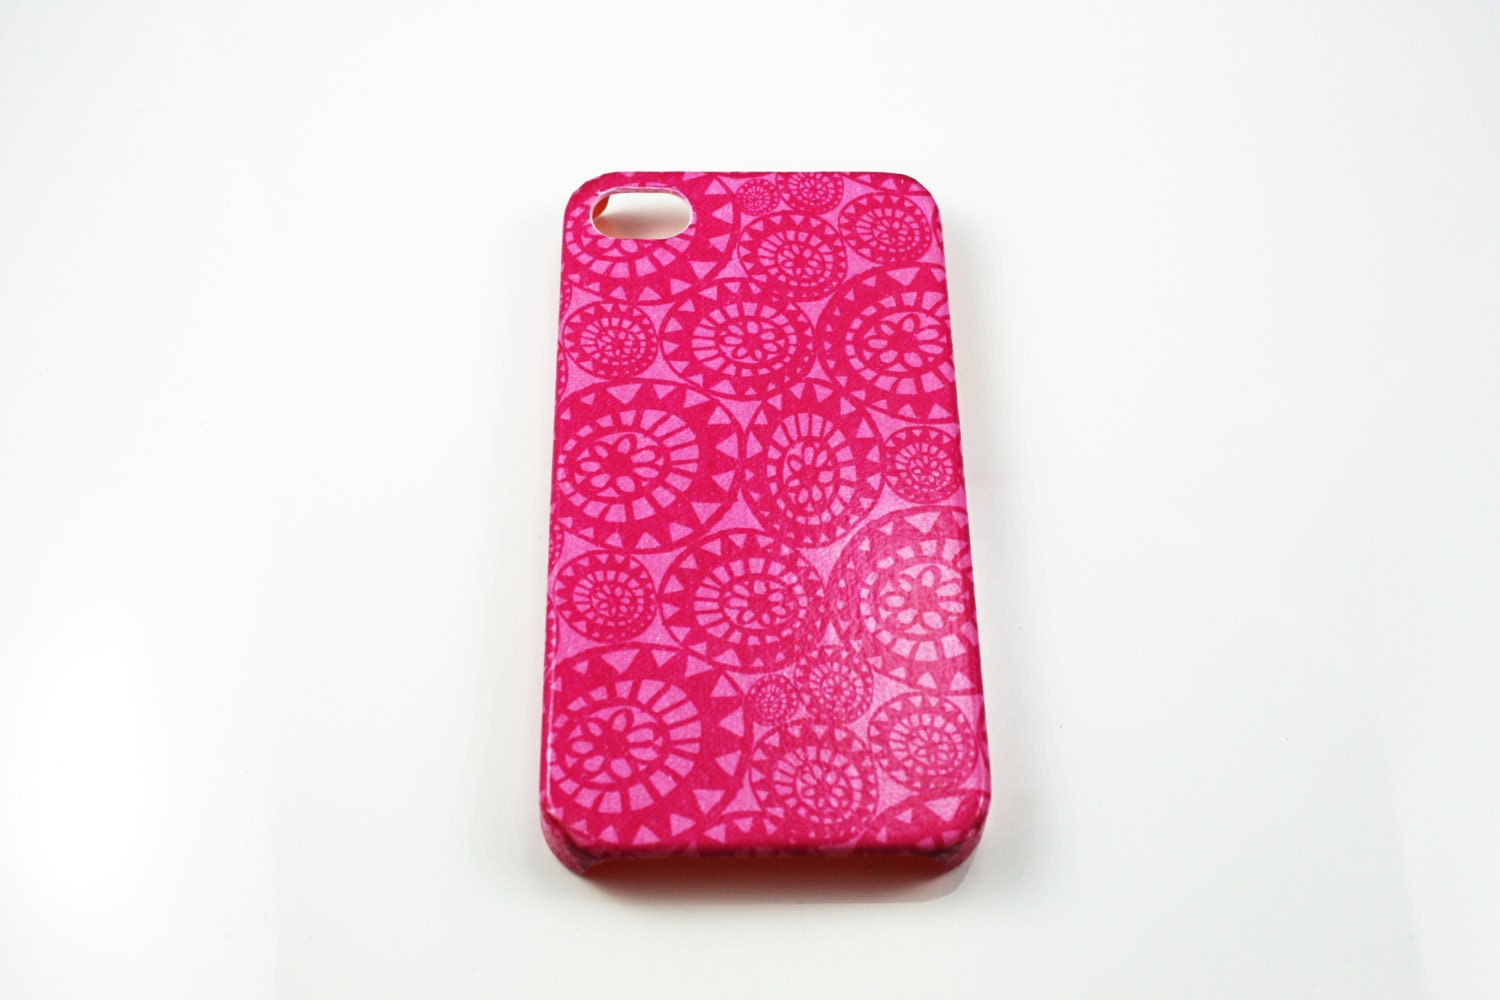 Pink Flowers iPhone 44s55s5c Samsung Galaxy S4 S5Young Case Nokia Lumia 5219209251020 Case HTC One M7M8XS Case